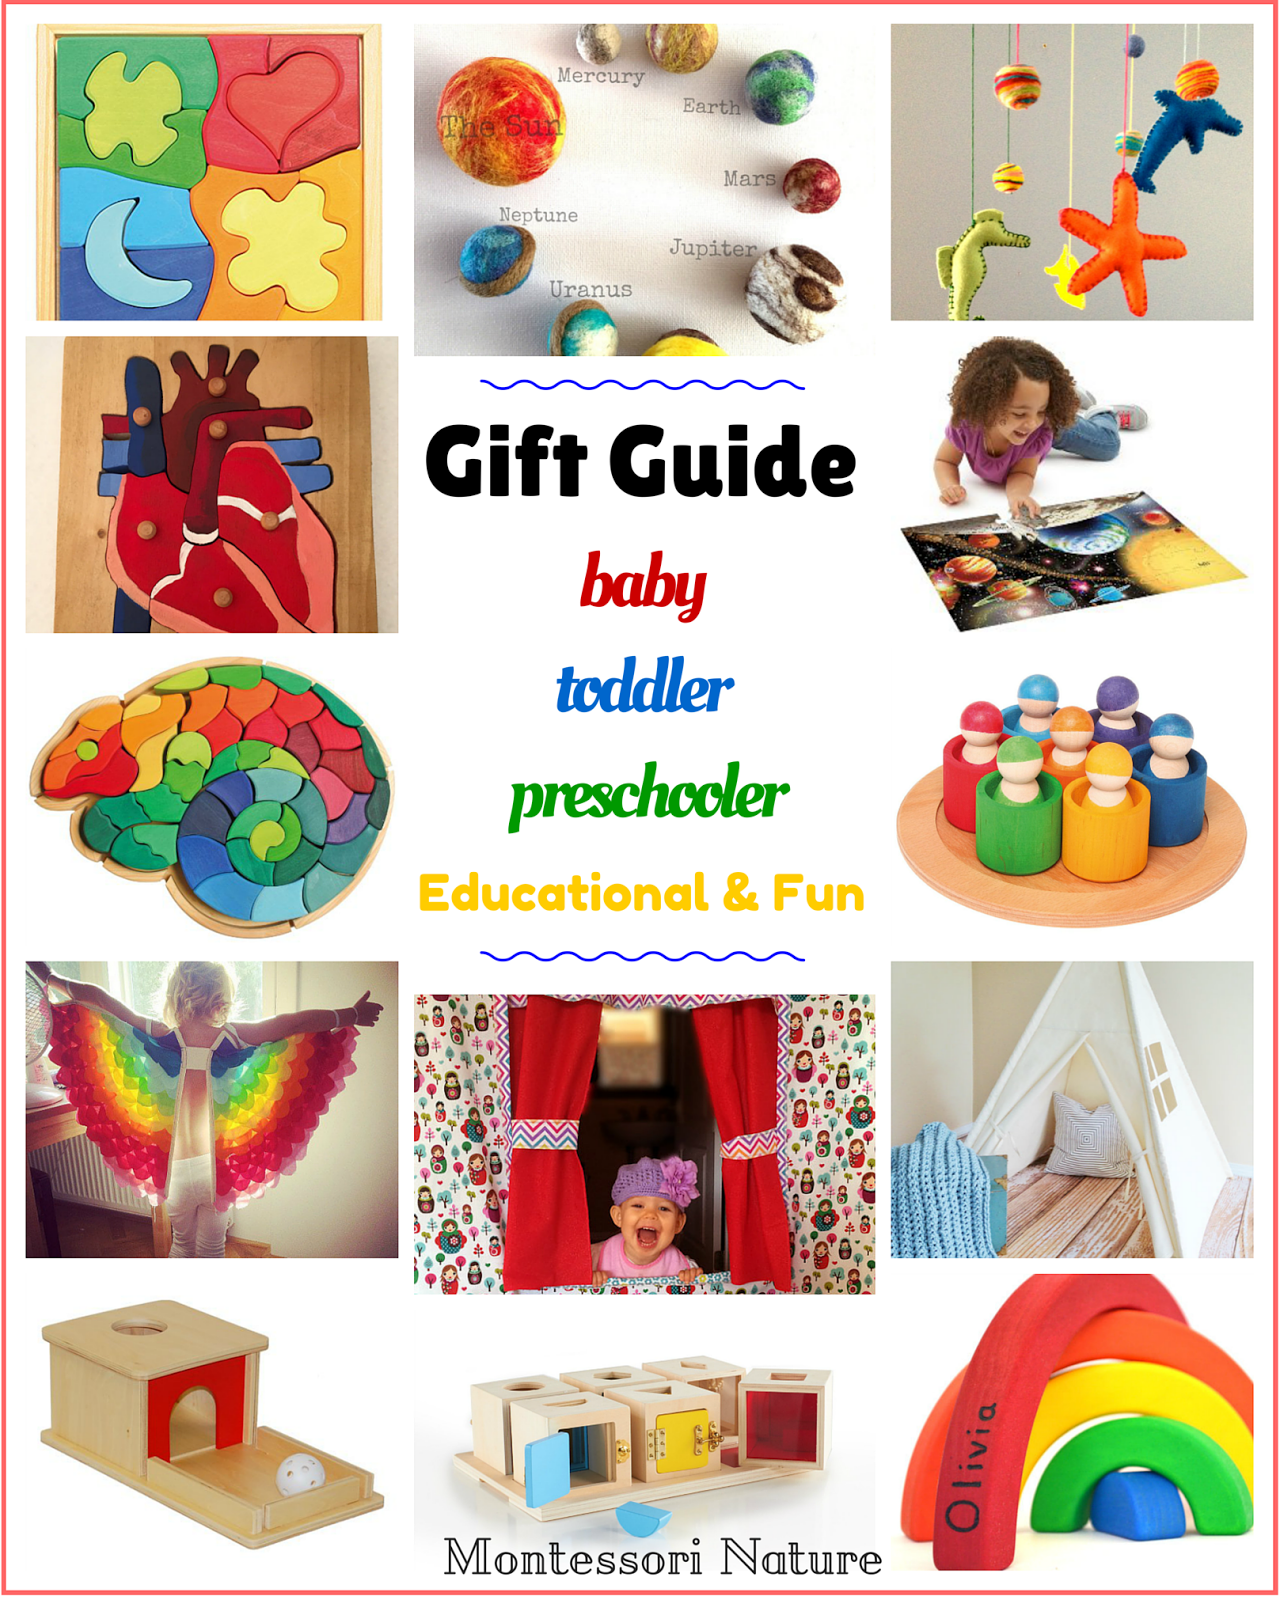 Gift Guide for baby, toddler and preschooler (0 - 5 yo ... - photo#32